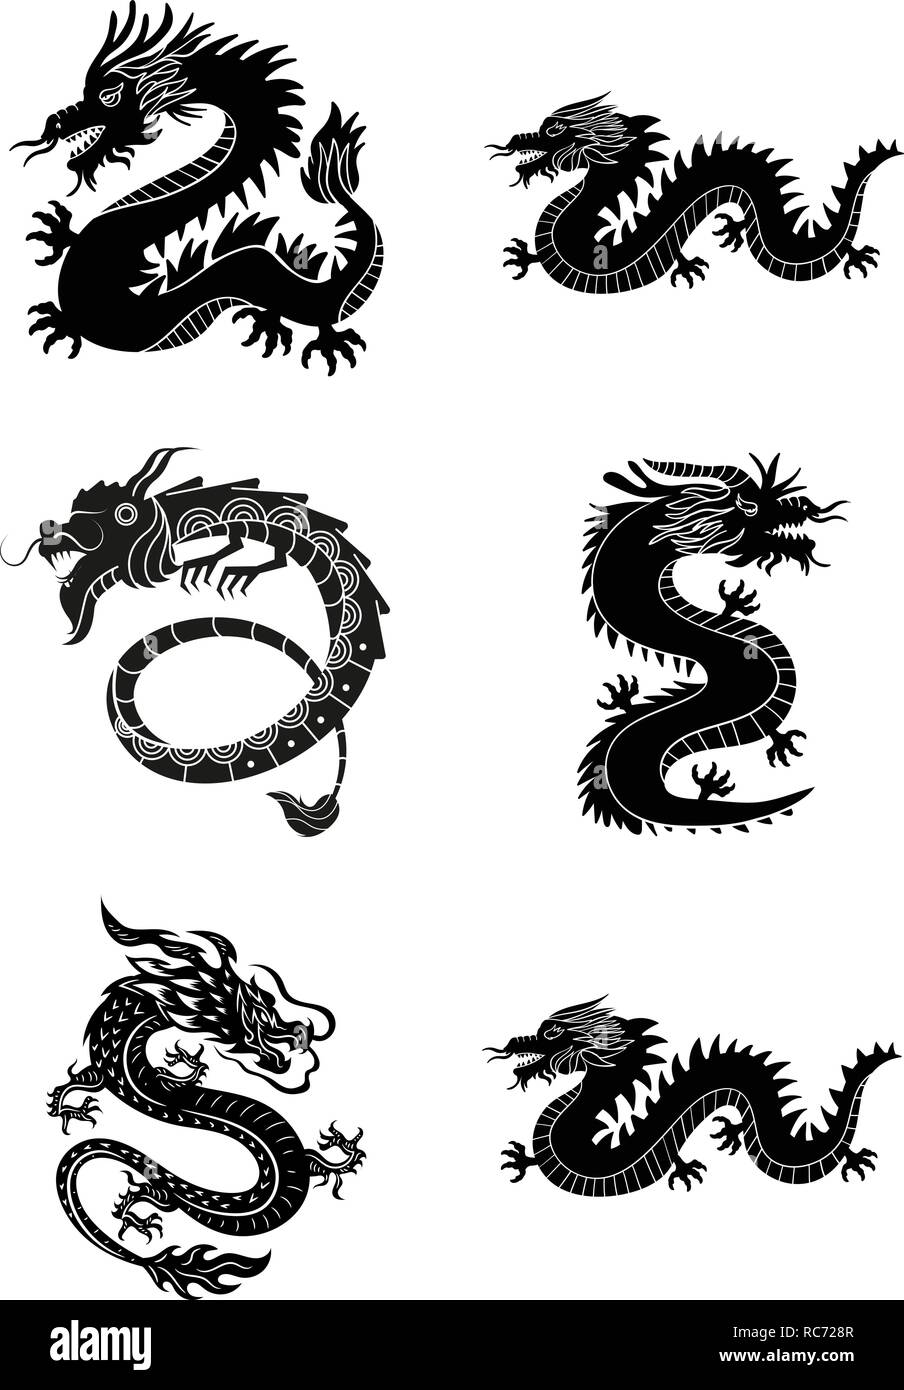 8b5ba02c17c6c Wild black dragons for tattoo or mascot design - Vector,.Black flying  dragons with carved wings in tribal style isolated on white background for  tatto